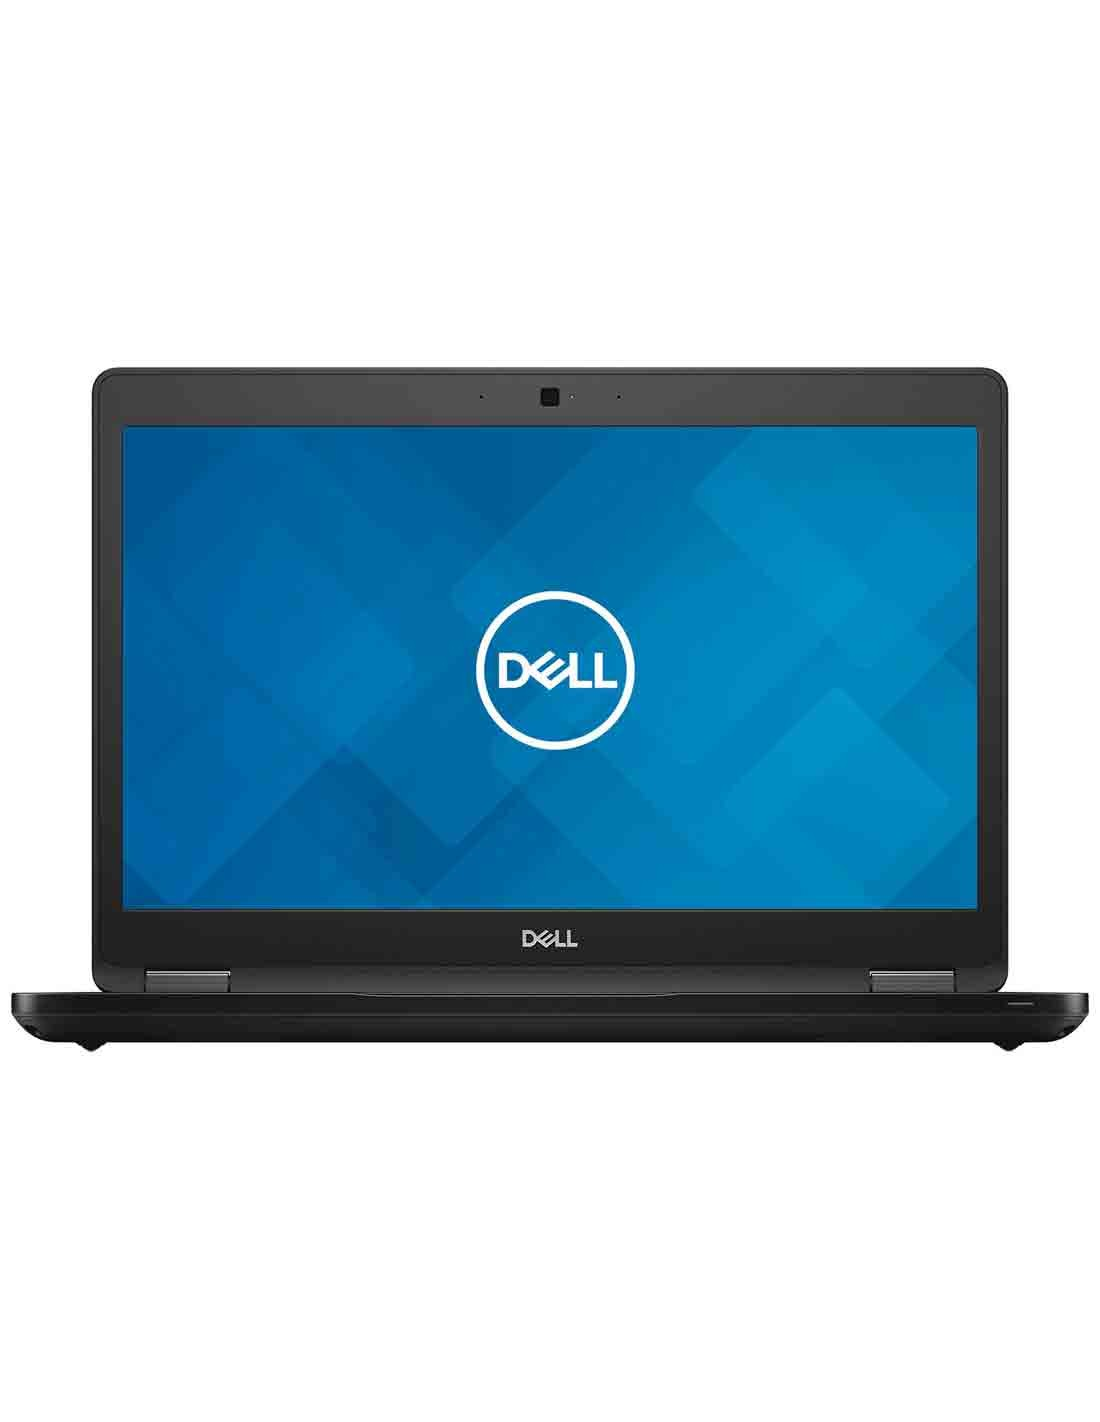 Dell Latitude 5580 i7 Laptop at the cheapest price and fast free delivery in Dubai computer store